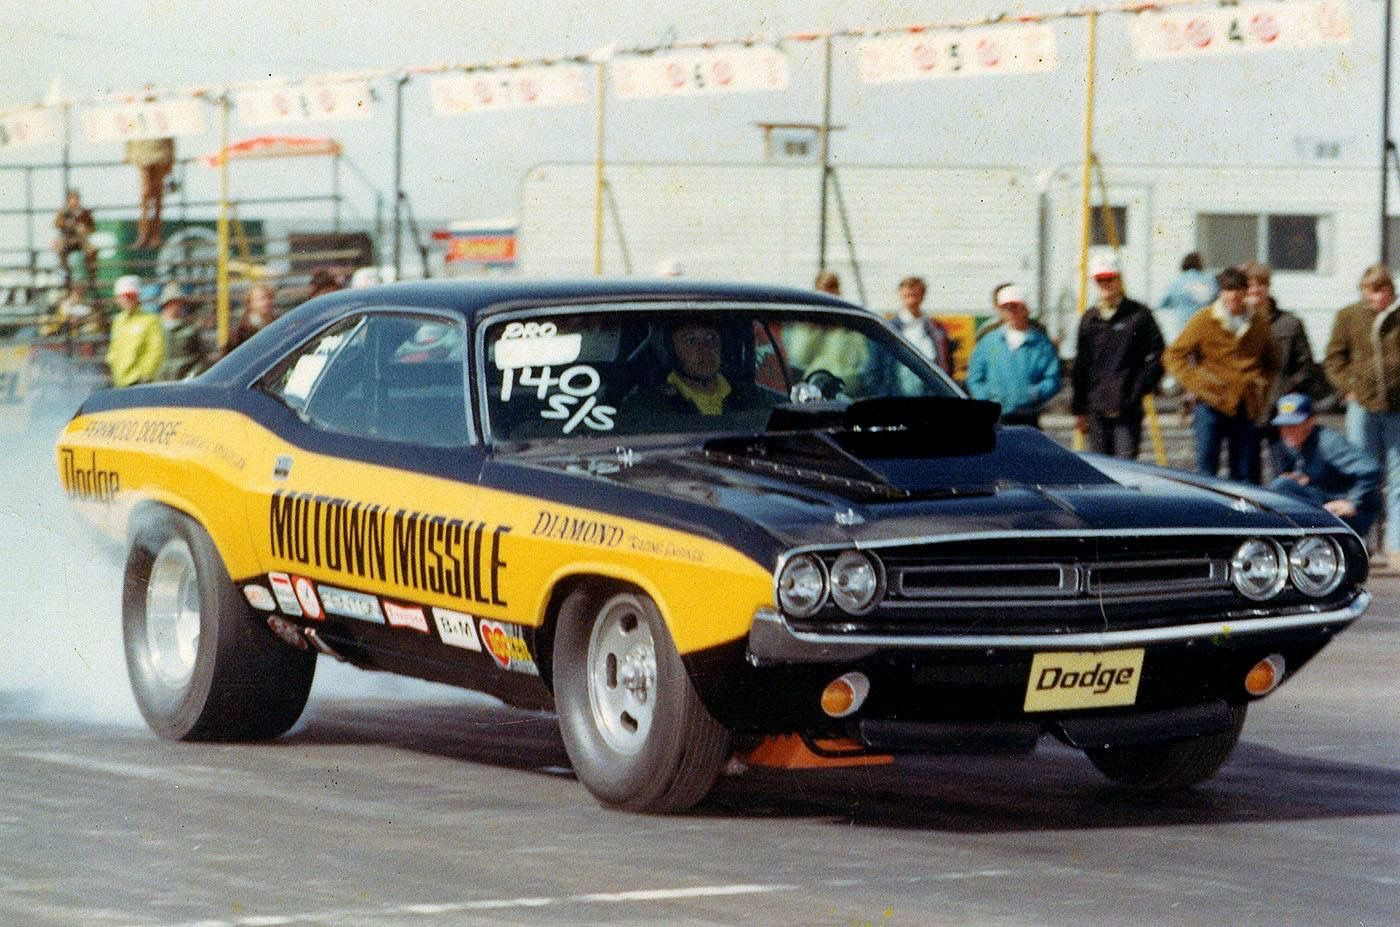 Motown Missile Drag Racing Cars Mopar Drag Racing